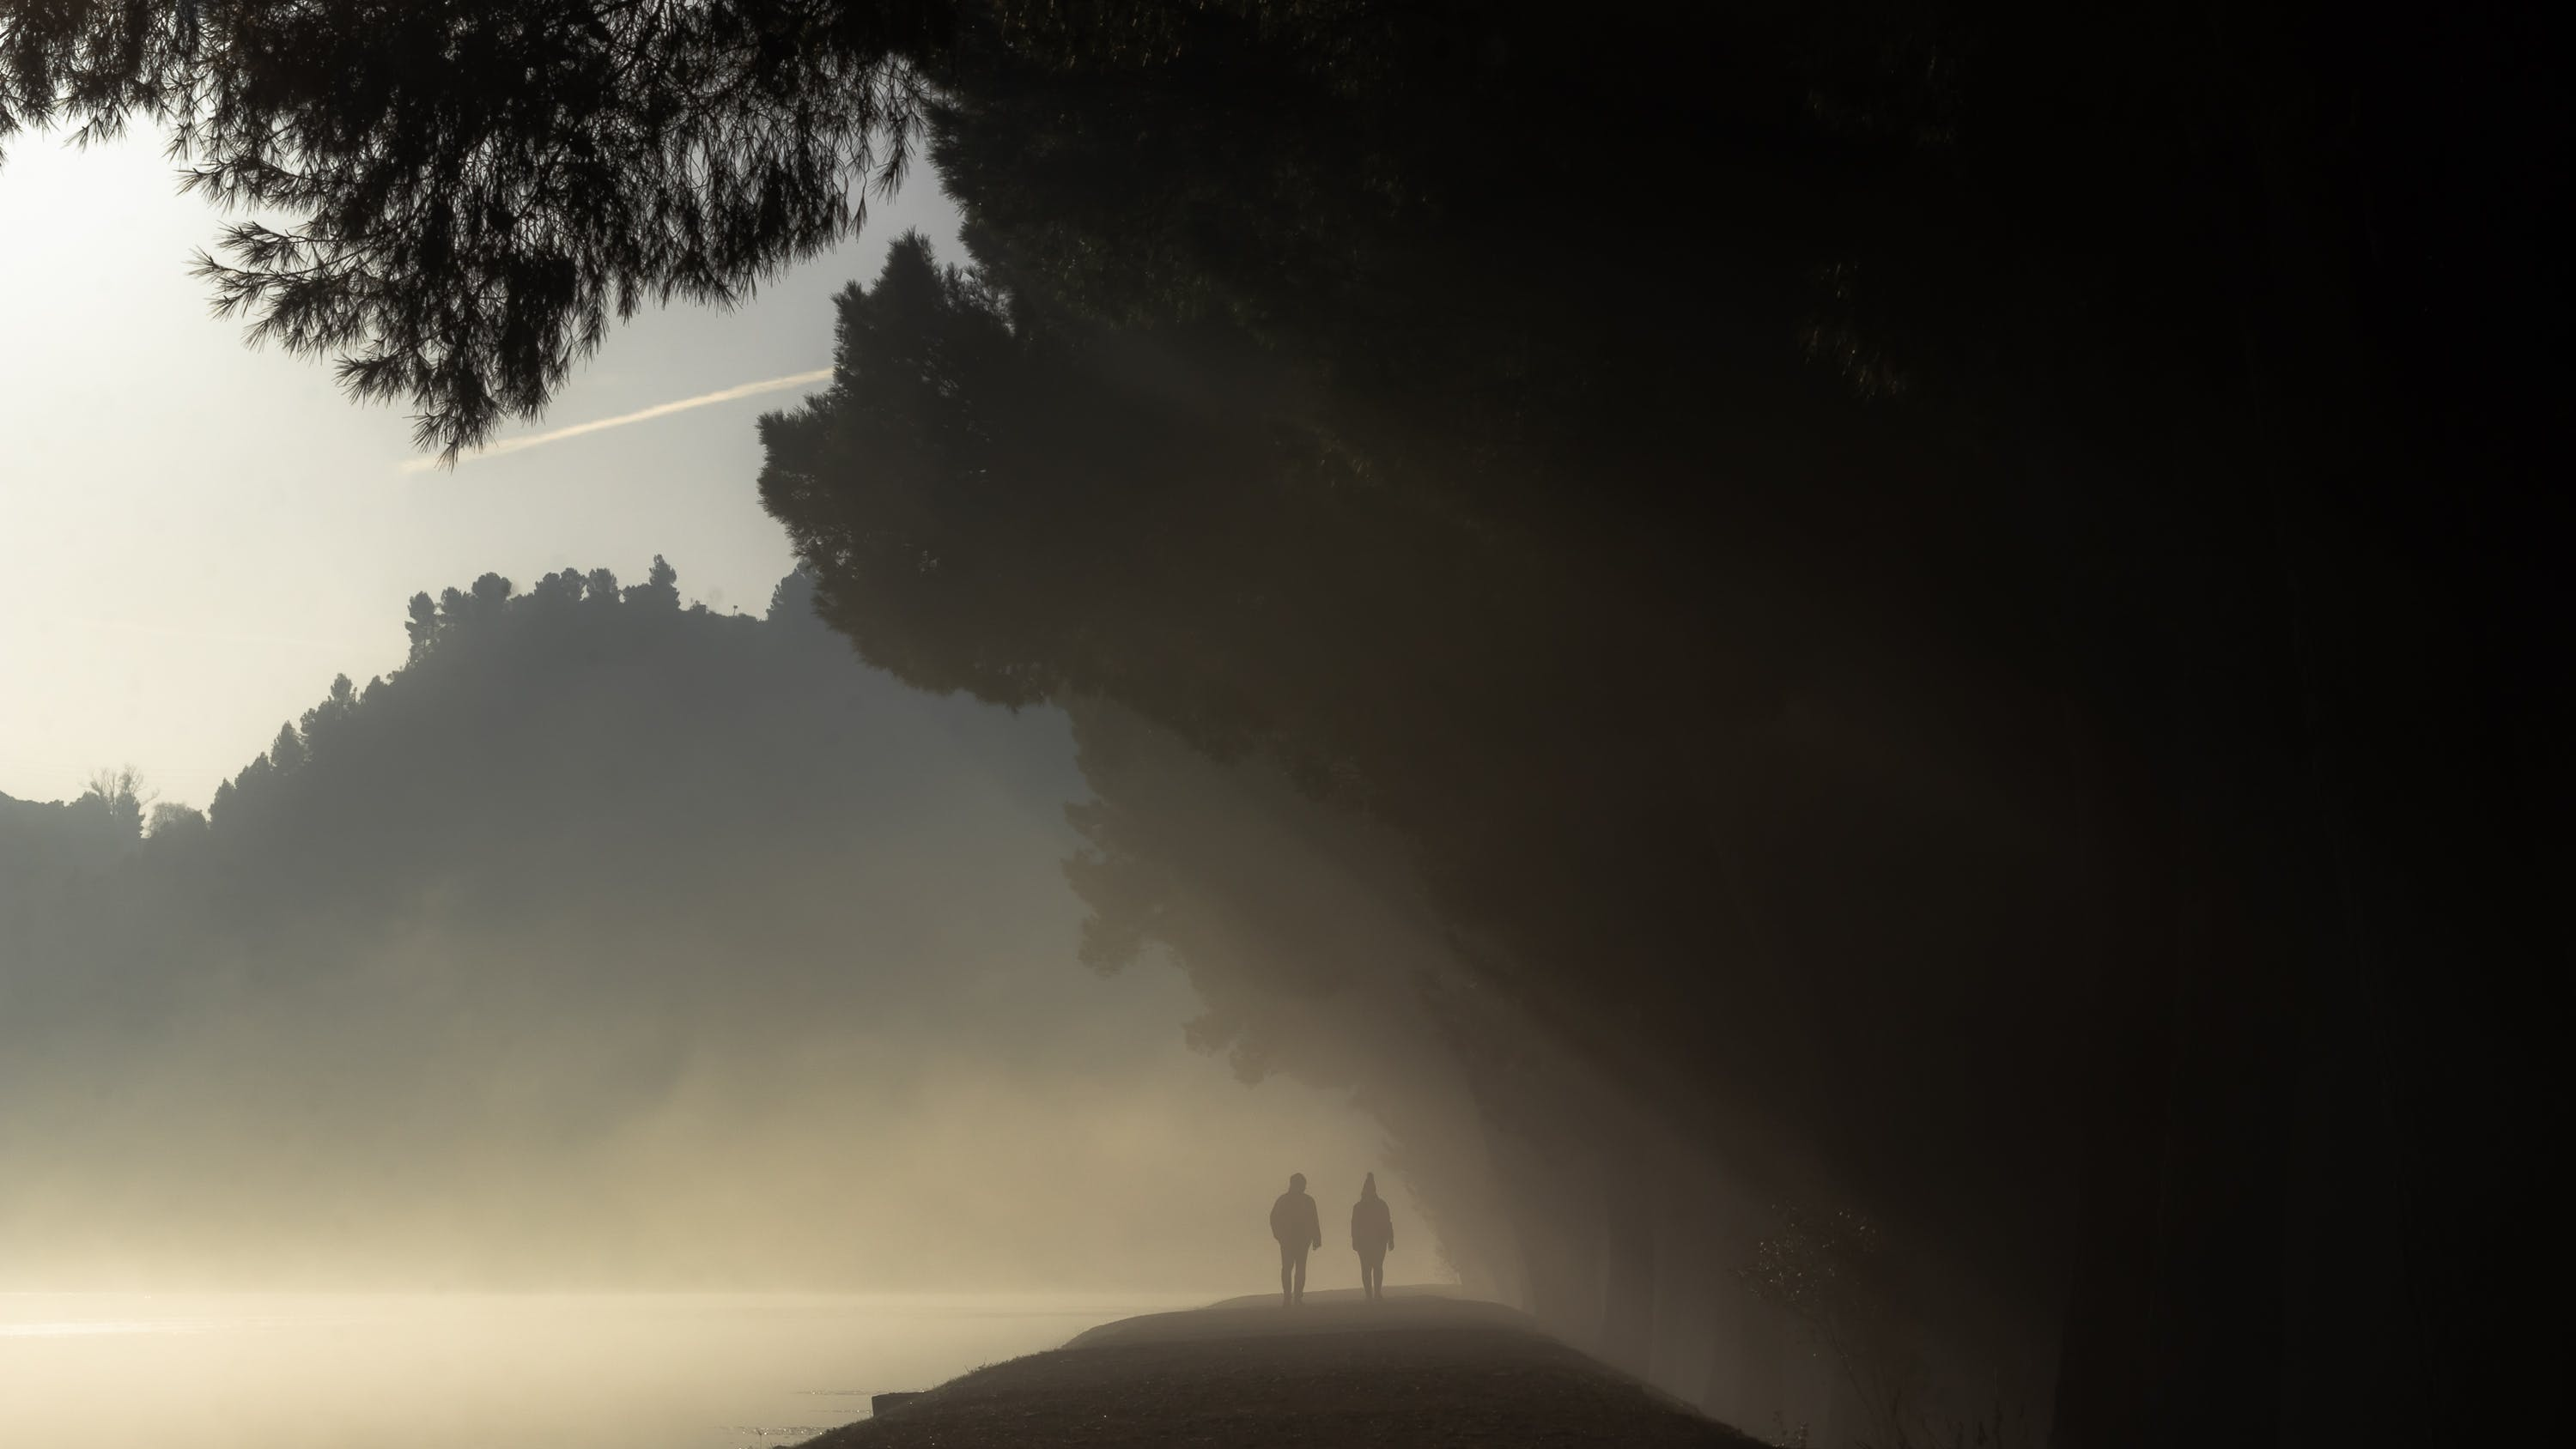 Silhouette of People on Cliff